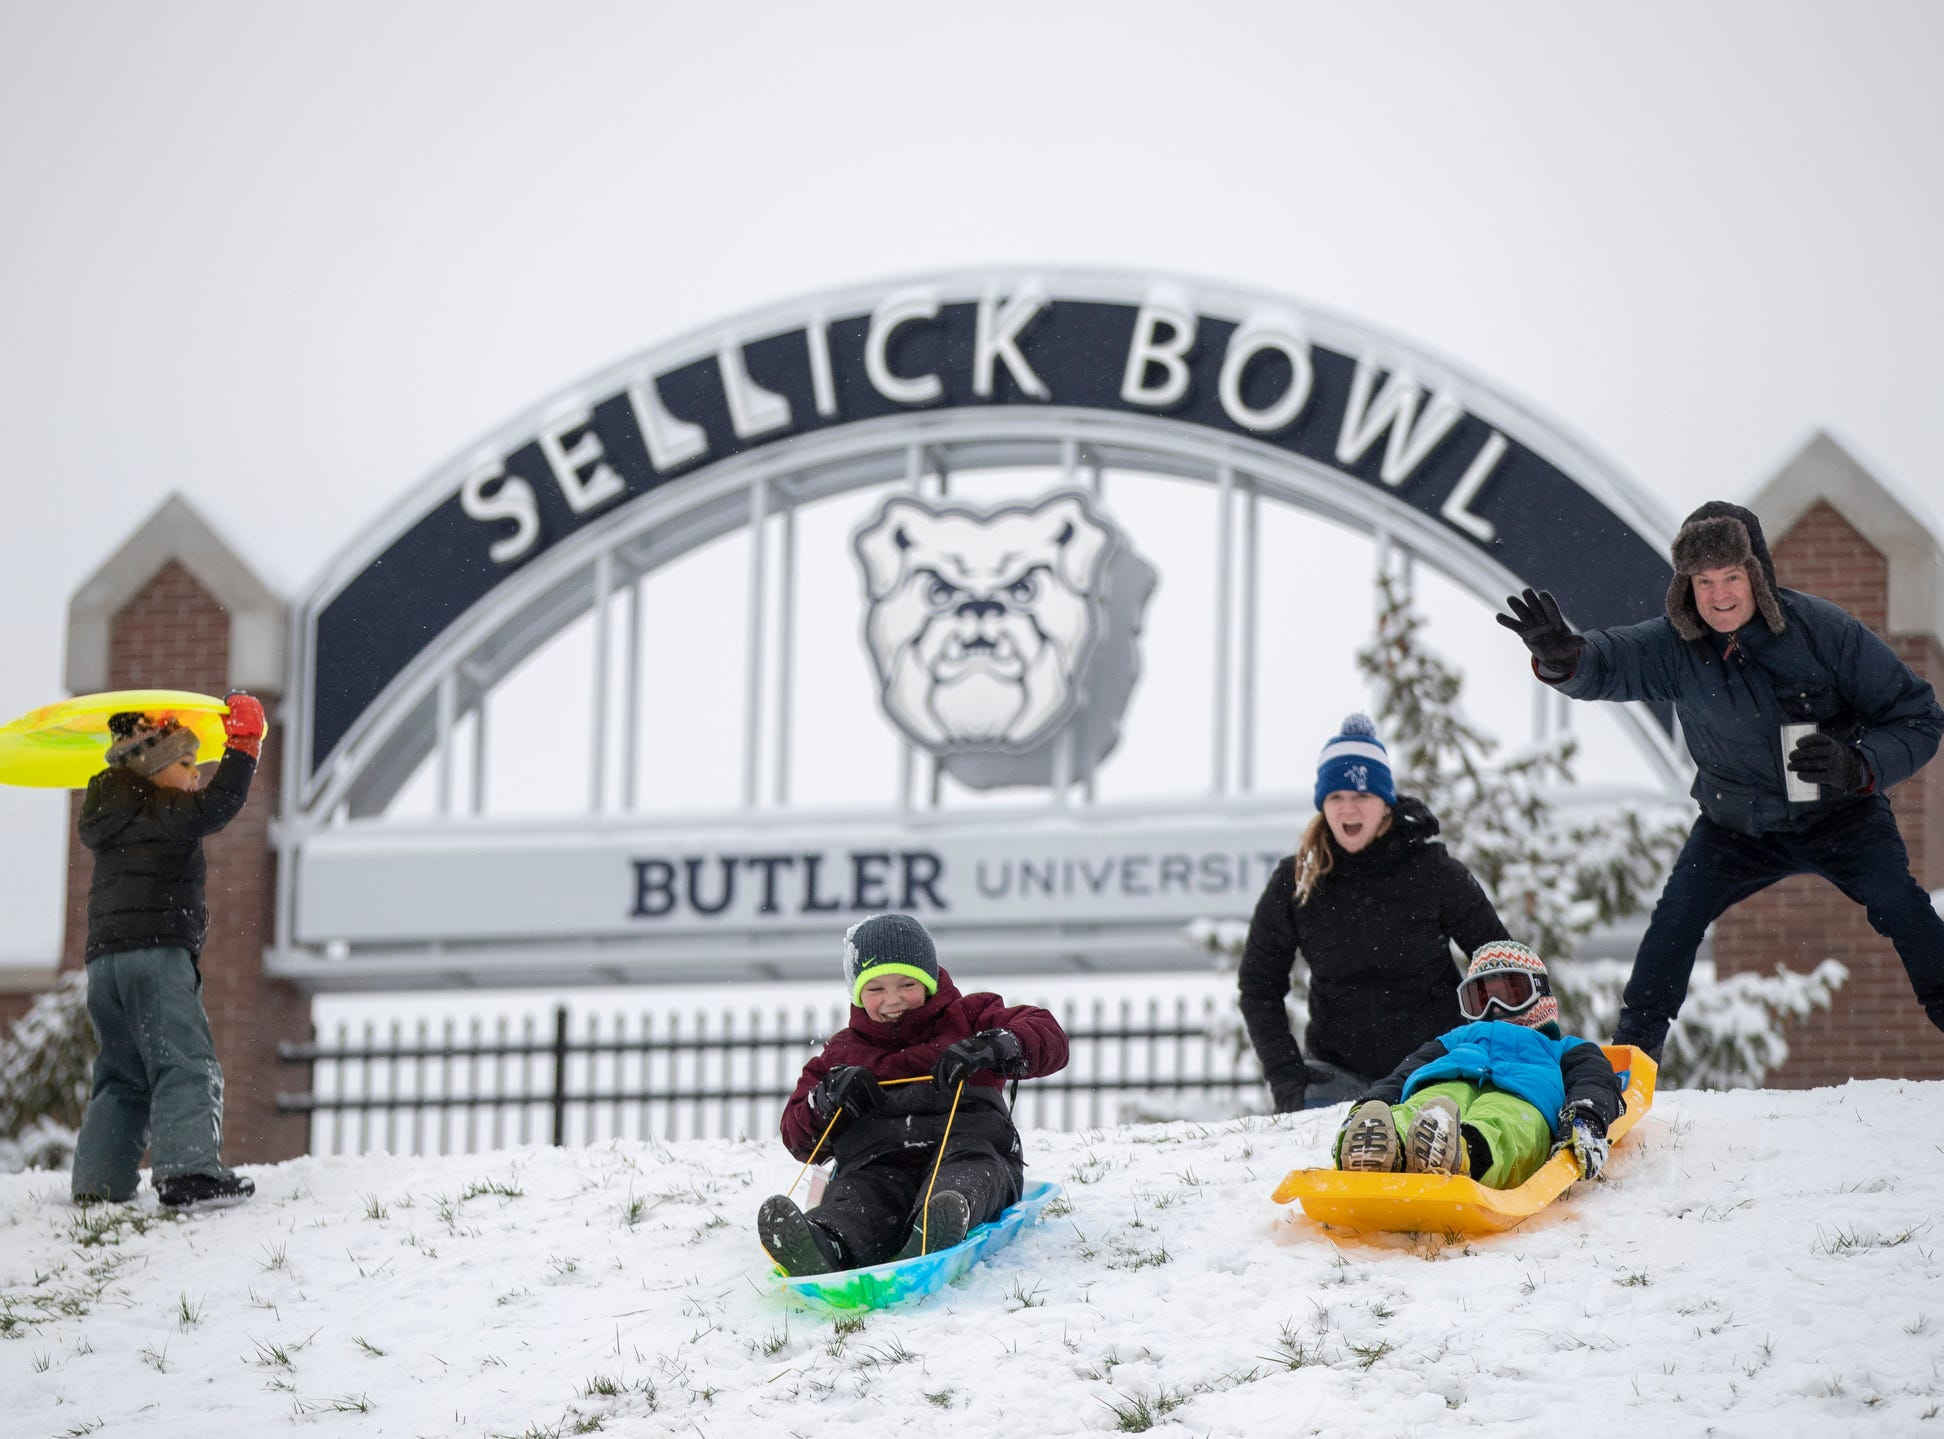 Sledders at Butler University on a day where 5-7 inches of snow is expected to fall in Central Indiana, Indianapolis, Saturday, Jan. 12, 2019.